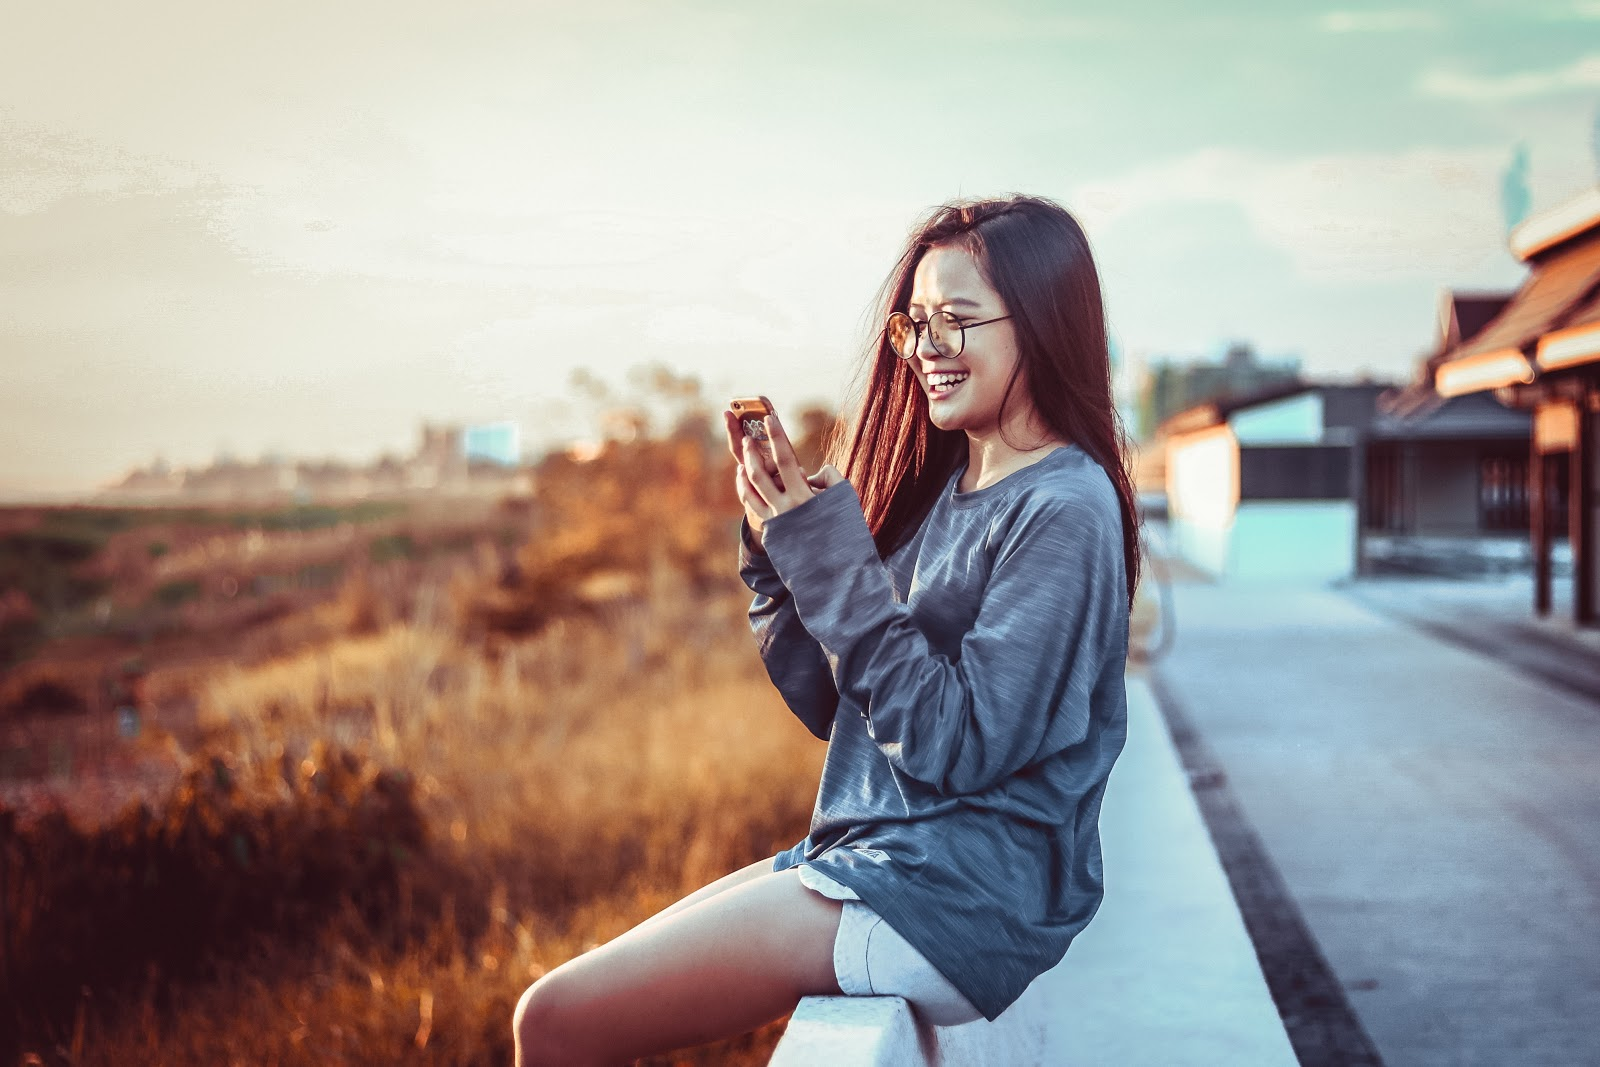 Woman sitting outside on her phone smiling